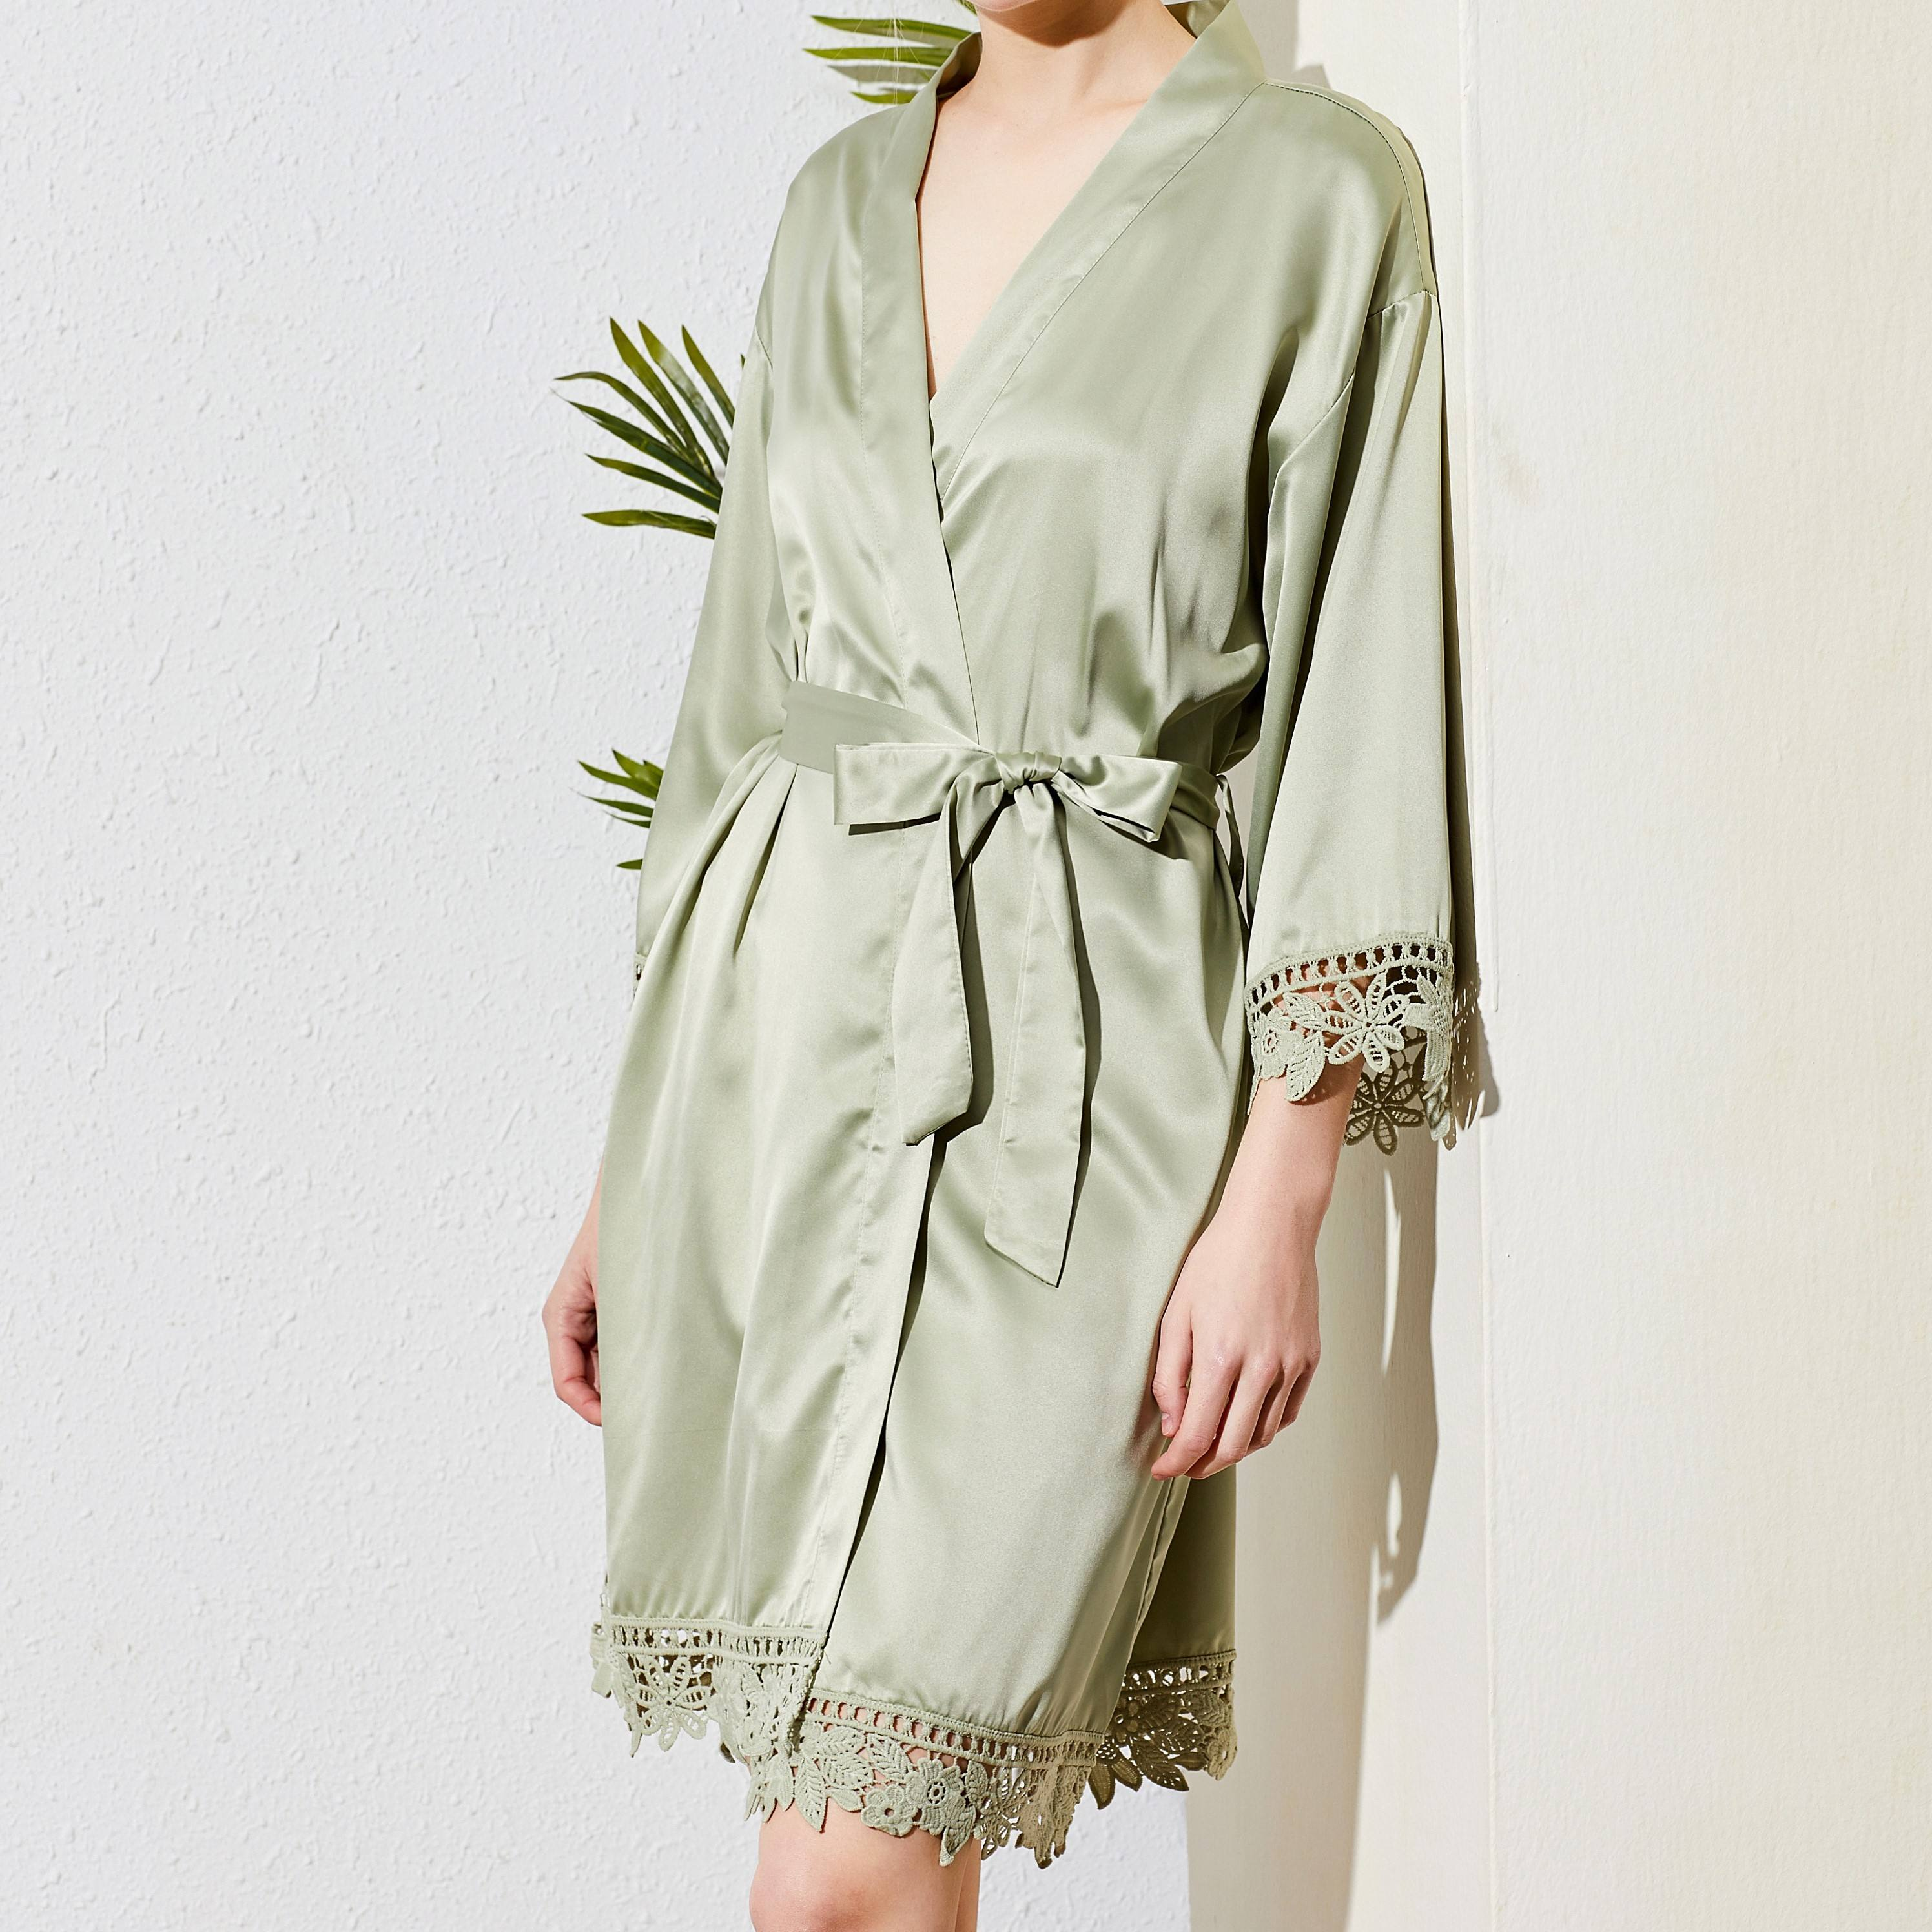 Hot Sell Sexy Stain Lace Robes sexy nighty sex sleepwear women Silk Soild Robes For Wedding Bride Gift Bathrobe